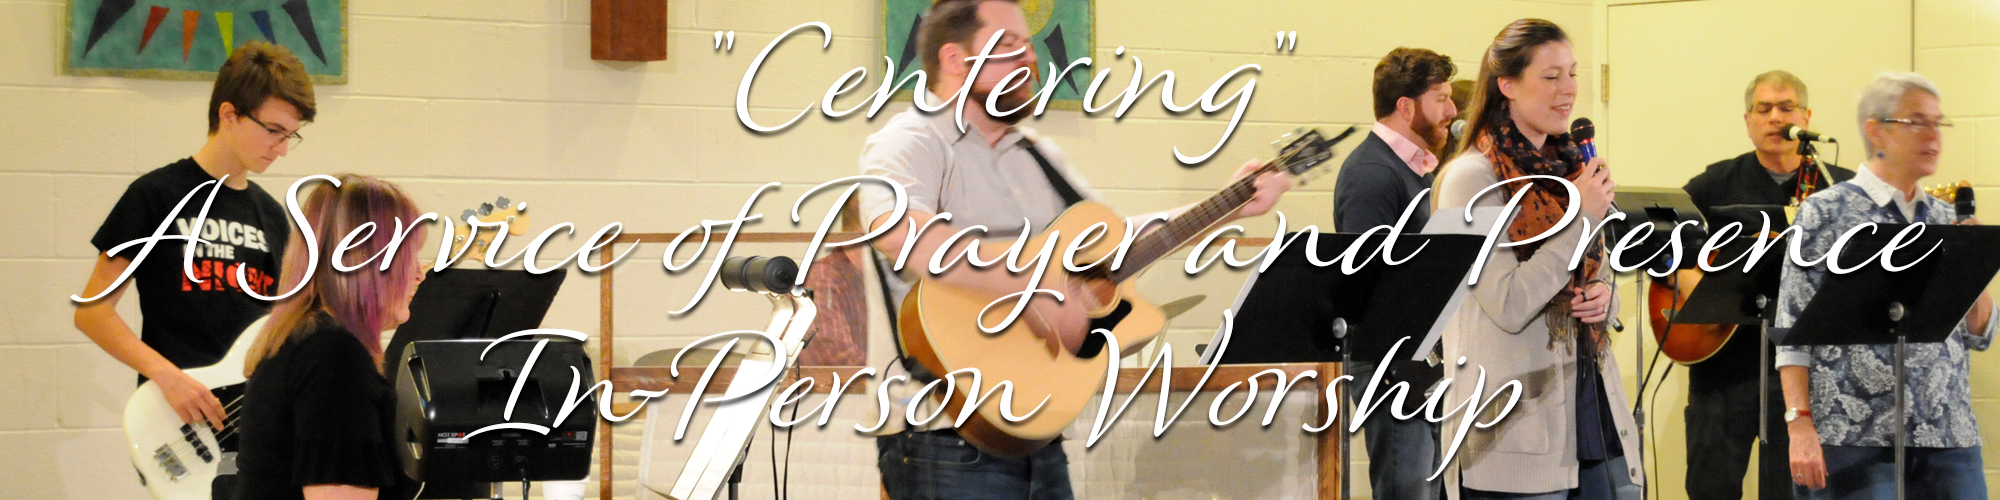 Centering in-Person worship